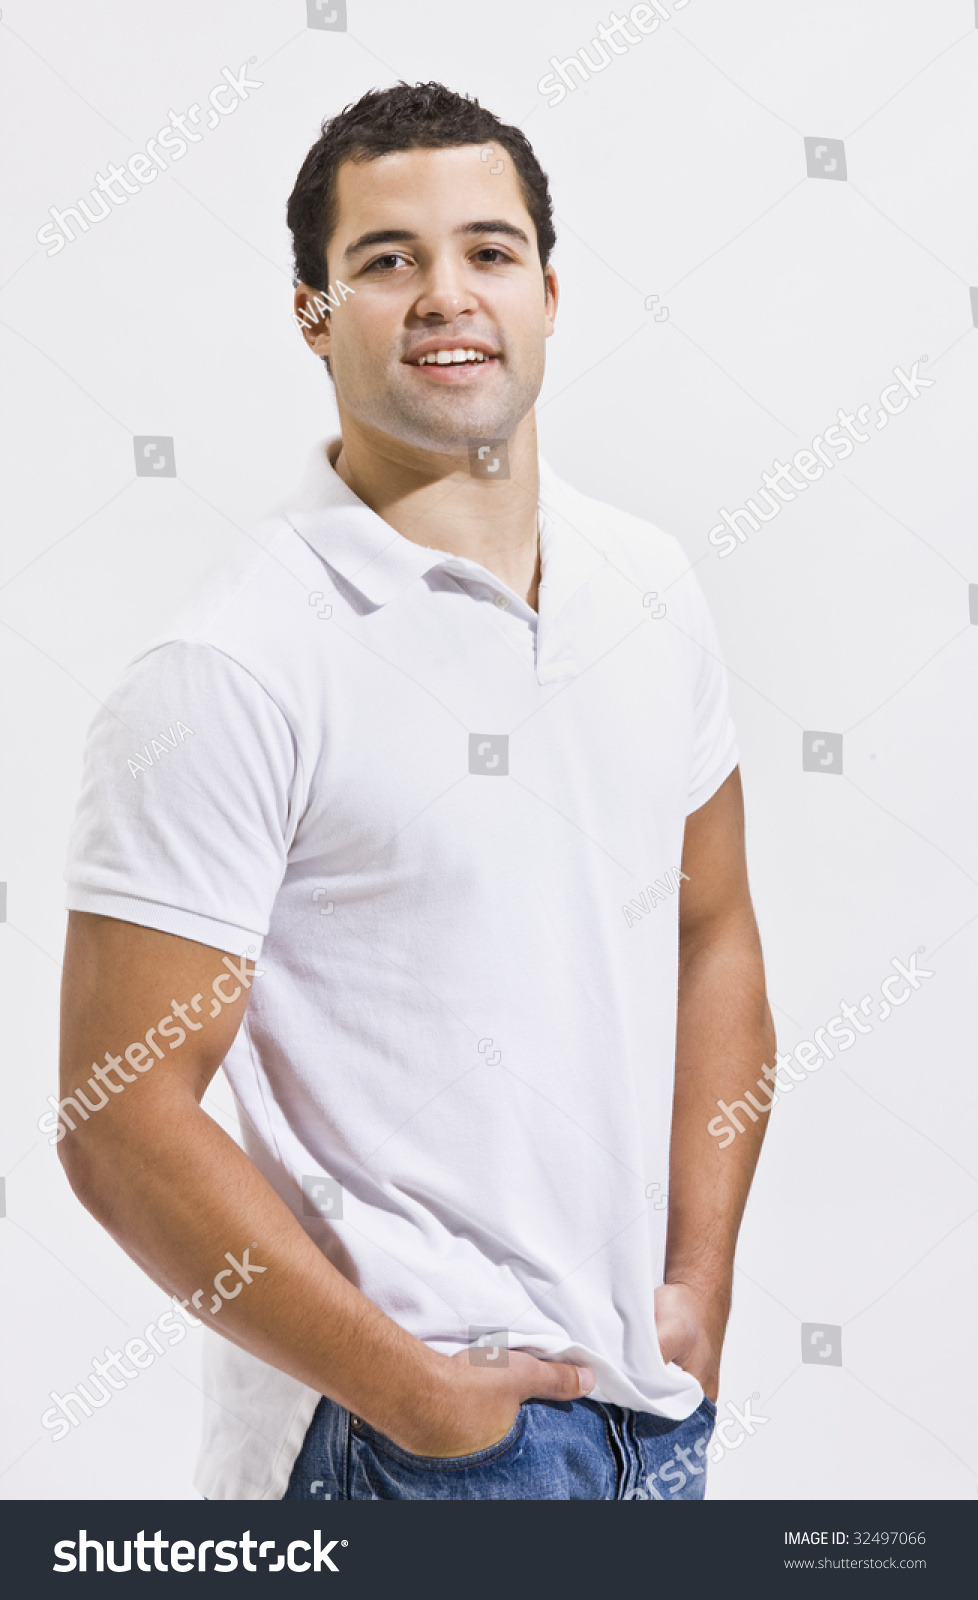 White t shirt blue jeans - An Attractive Man Posing In Blue Jeans And A Polo Shirt He Is Smiling Directly